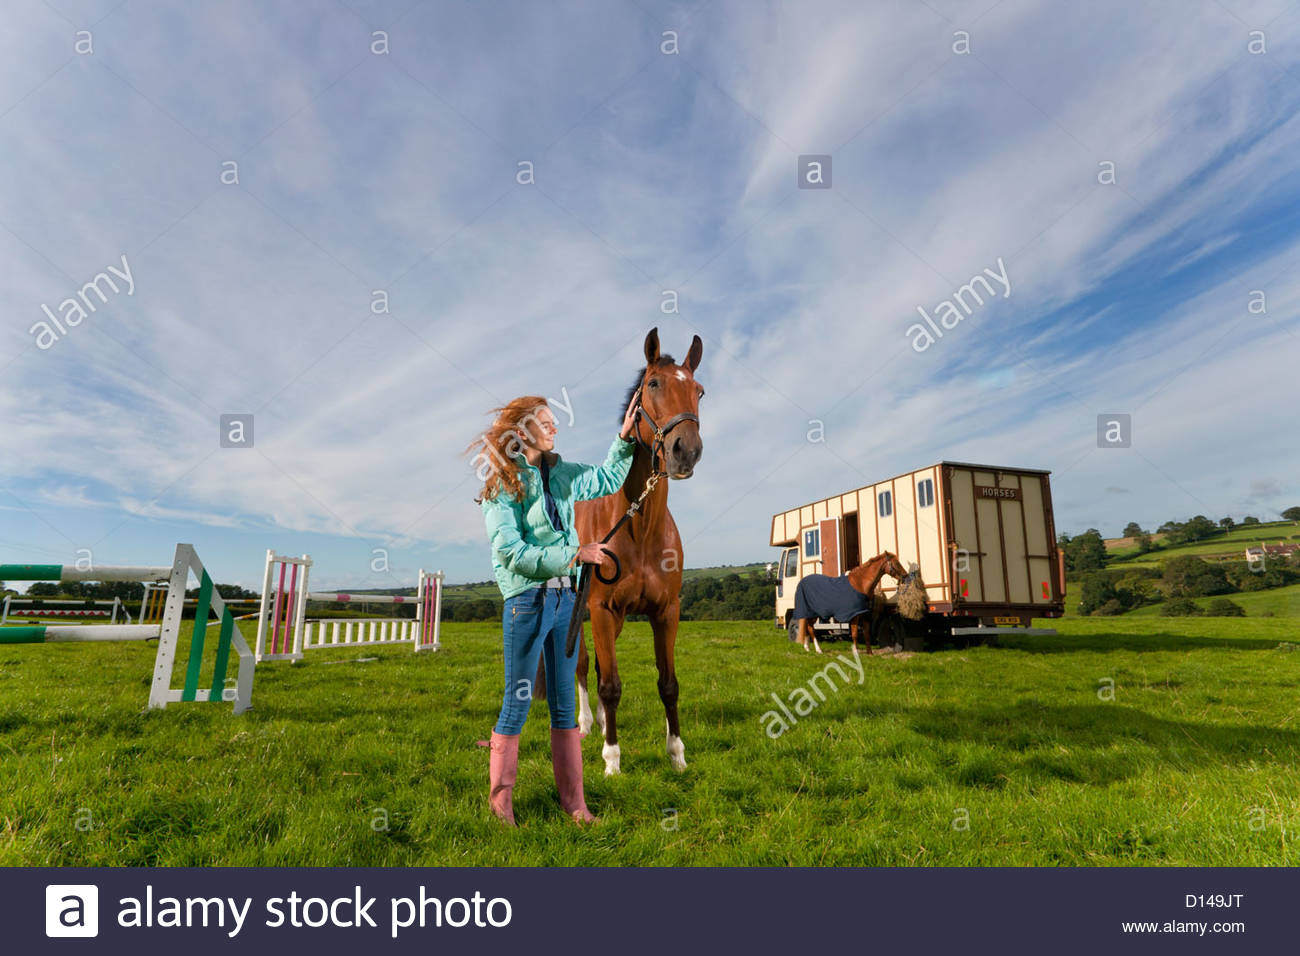 Girl with horse in field near trailer - Stock Image